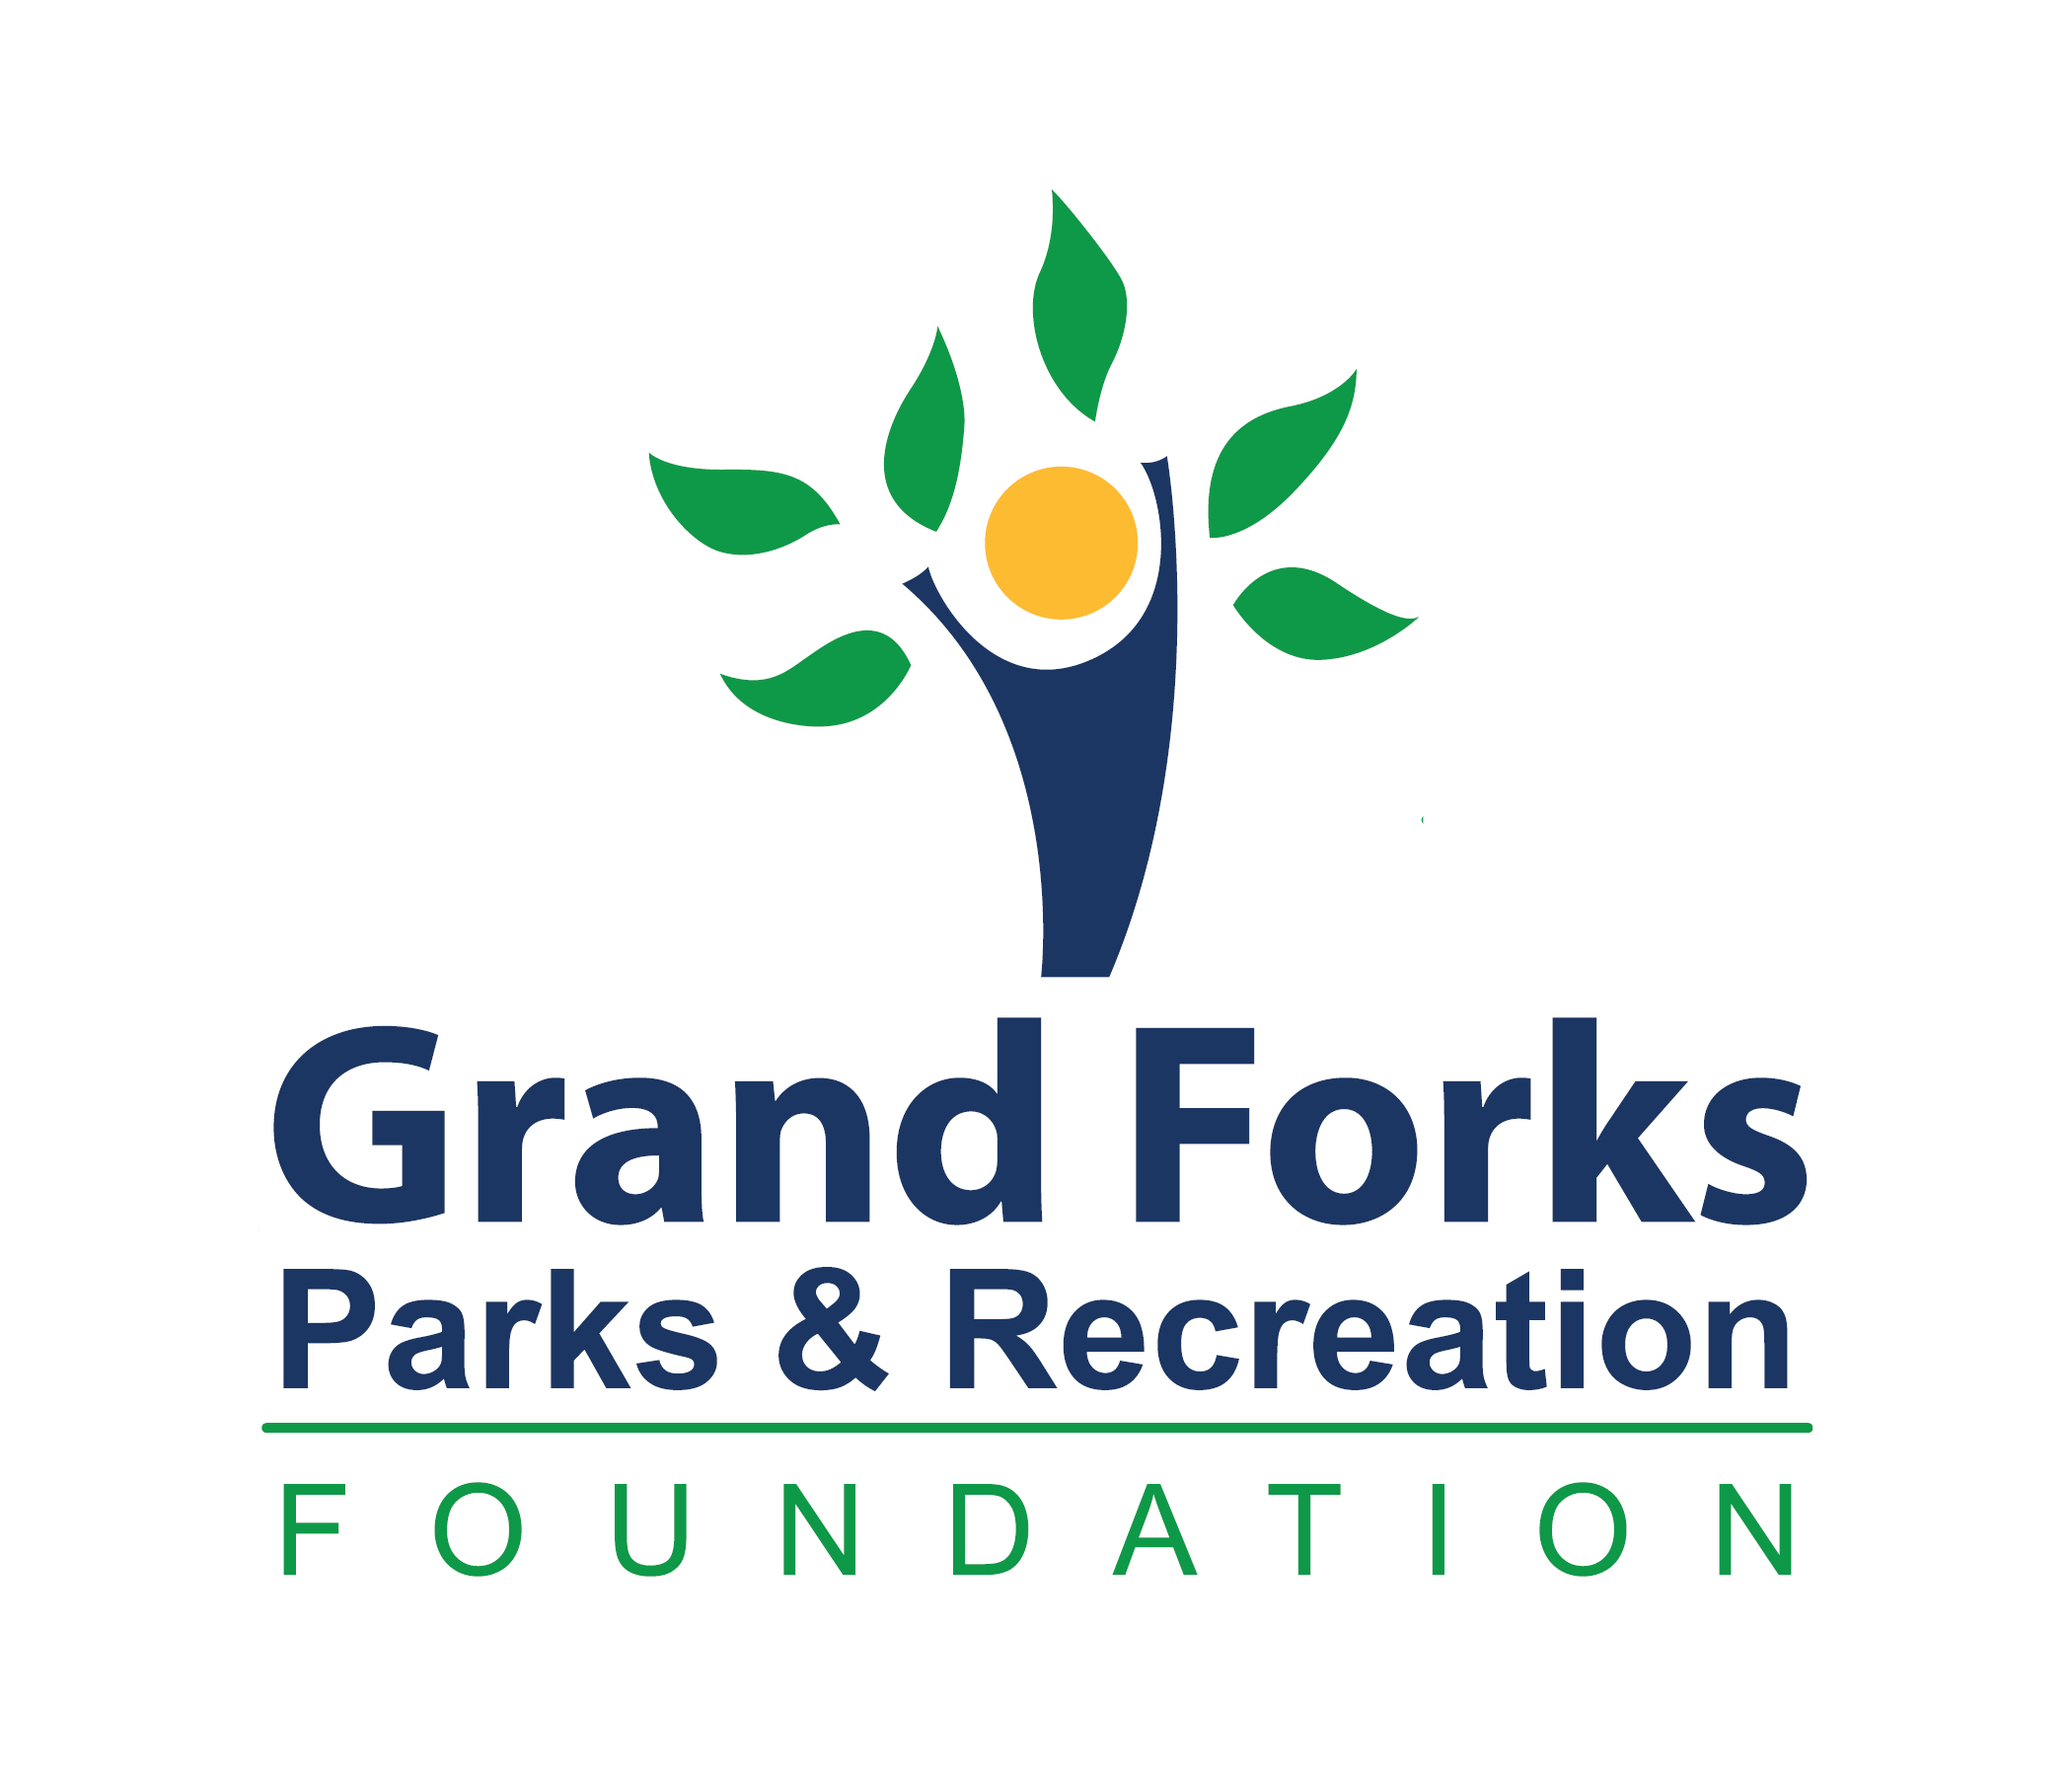 Grand Forks Parks and Recreation Foundation